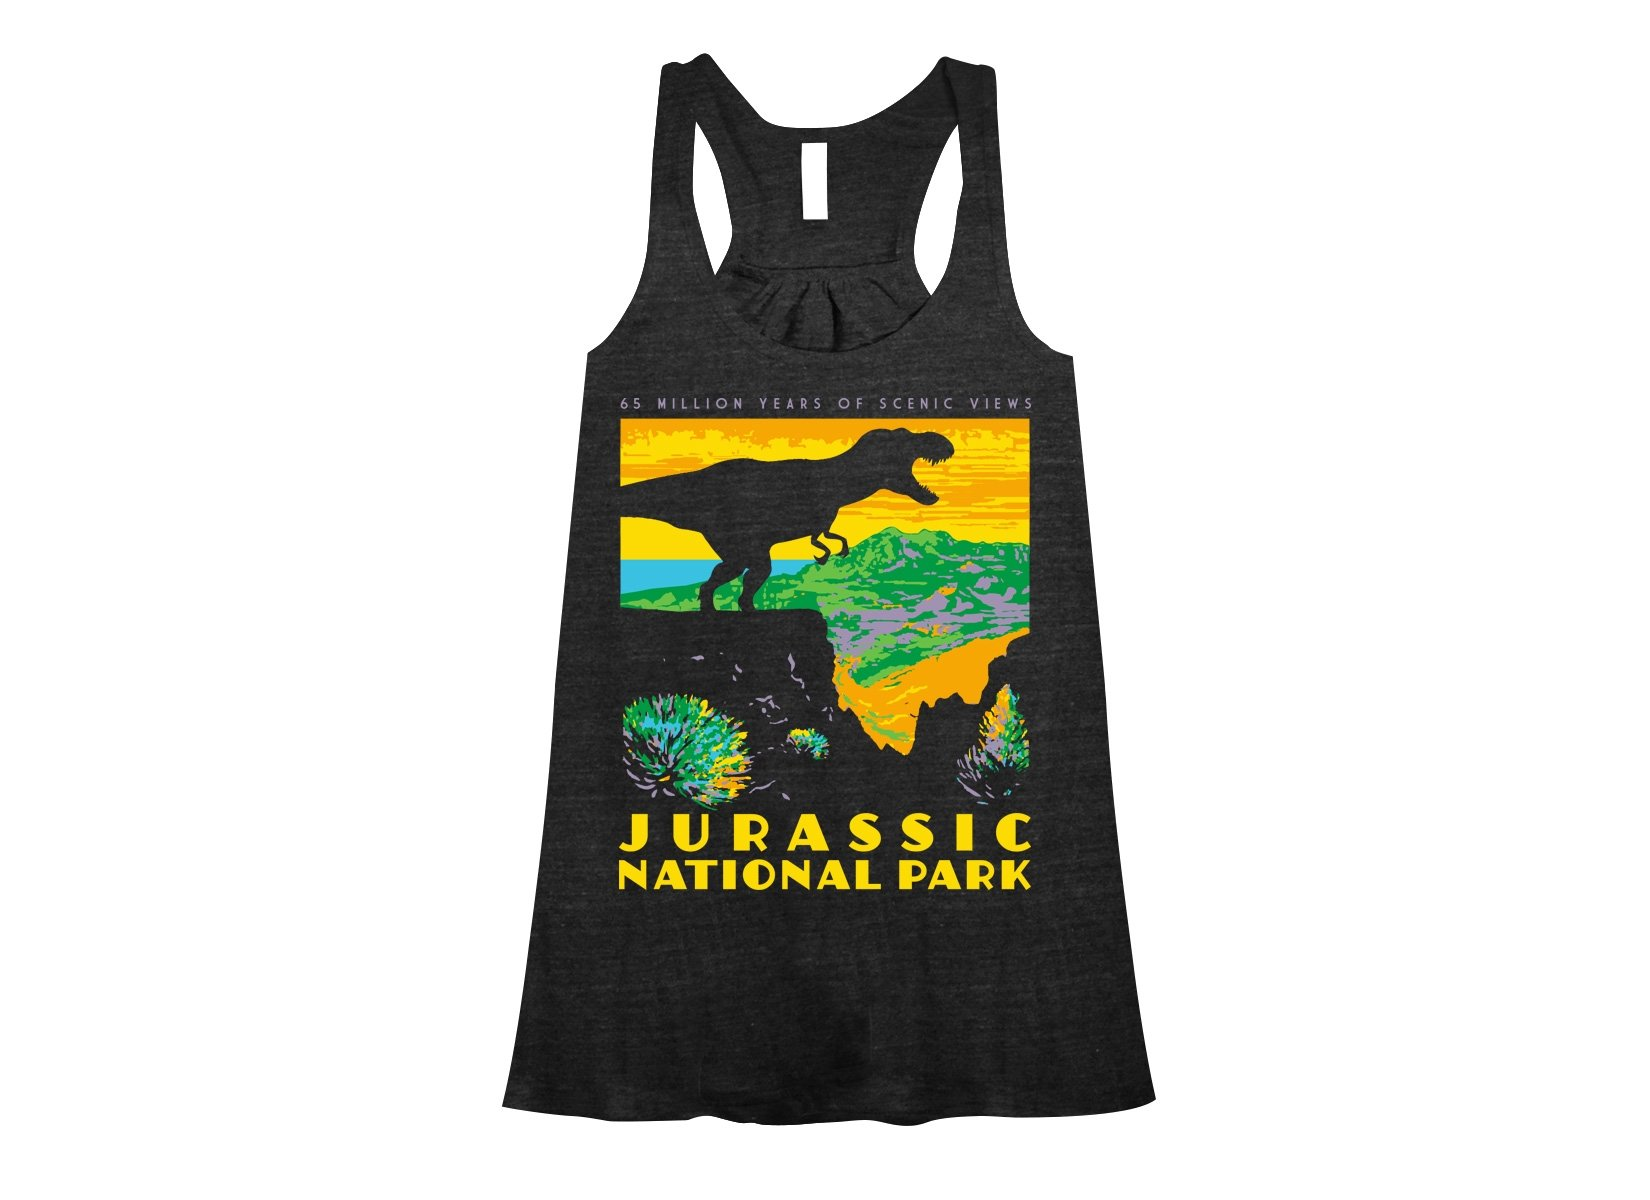 Jurassic National Park on Womens Tanks T-Shirt